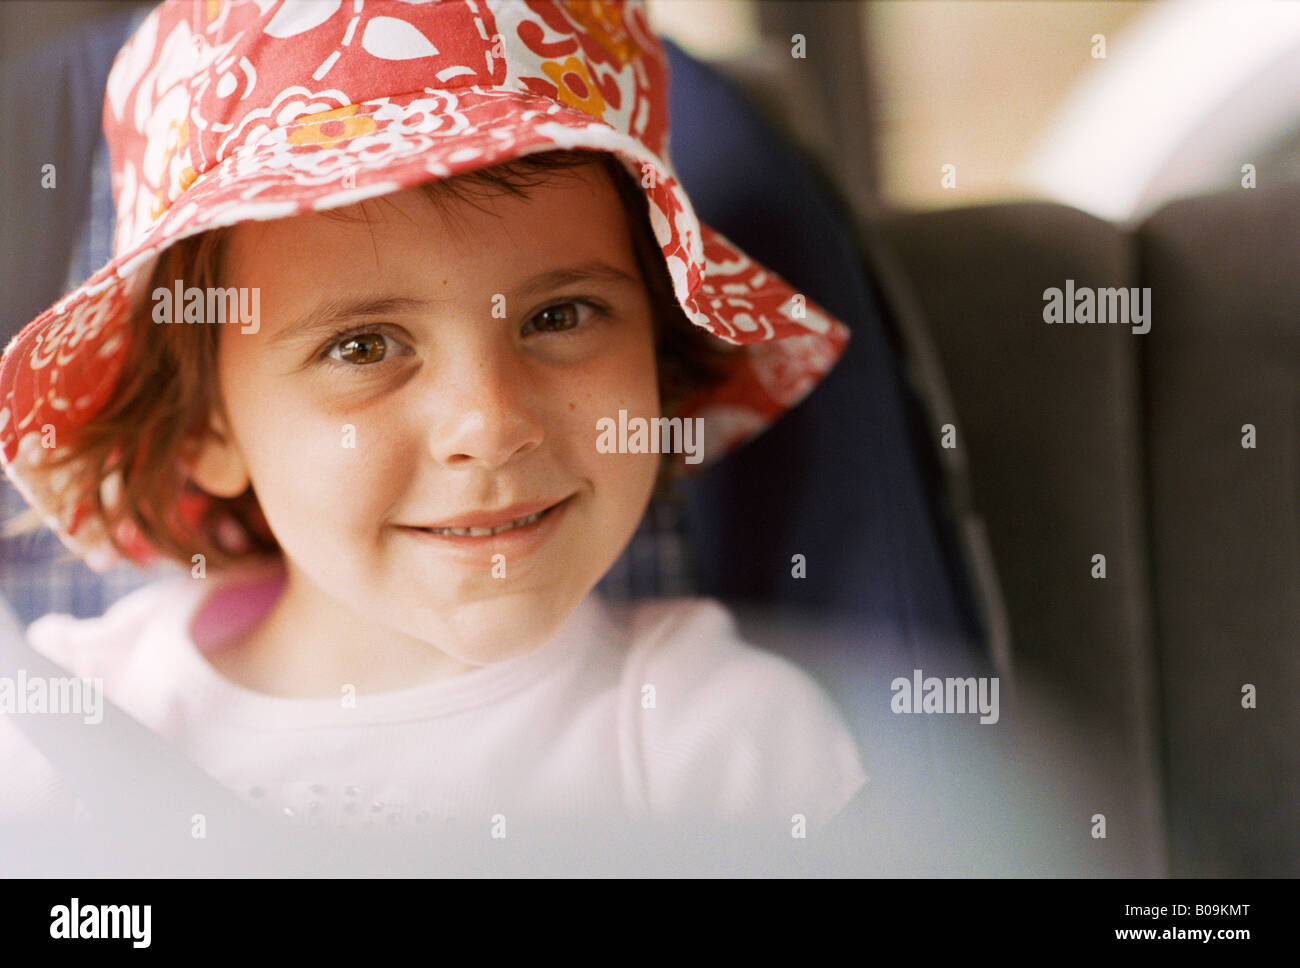 dad8cf7c0a9 A little girl smiling with a cute red floppy hat in a child safe car seat